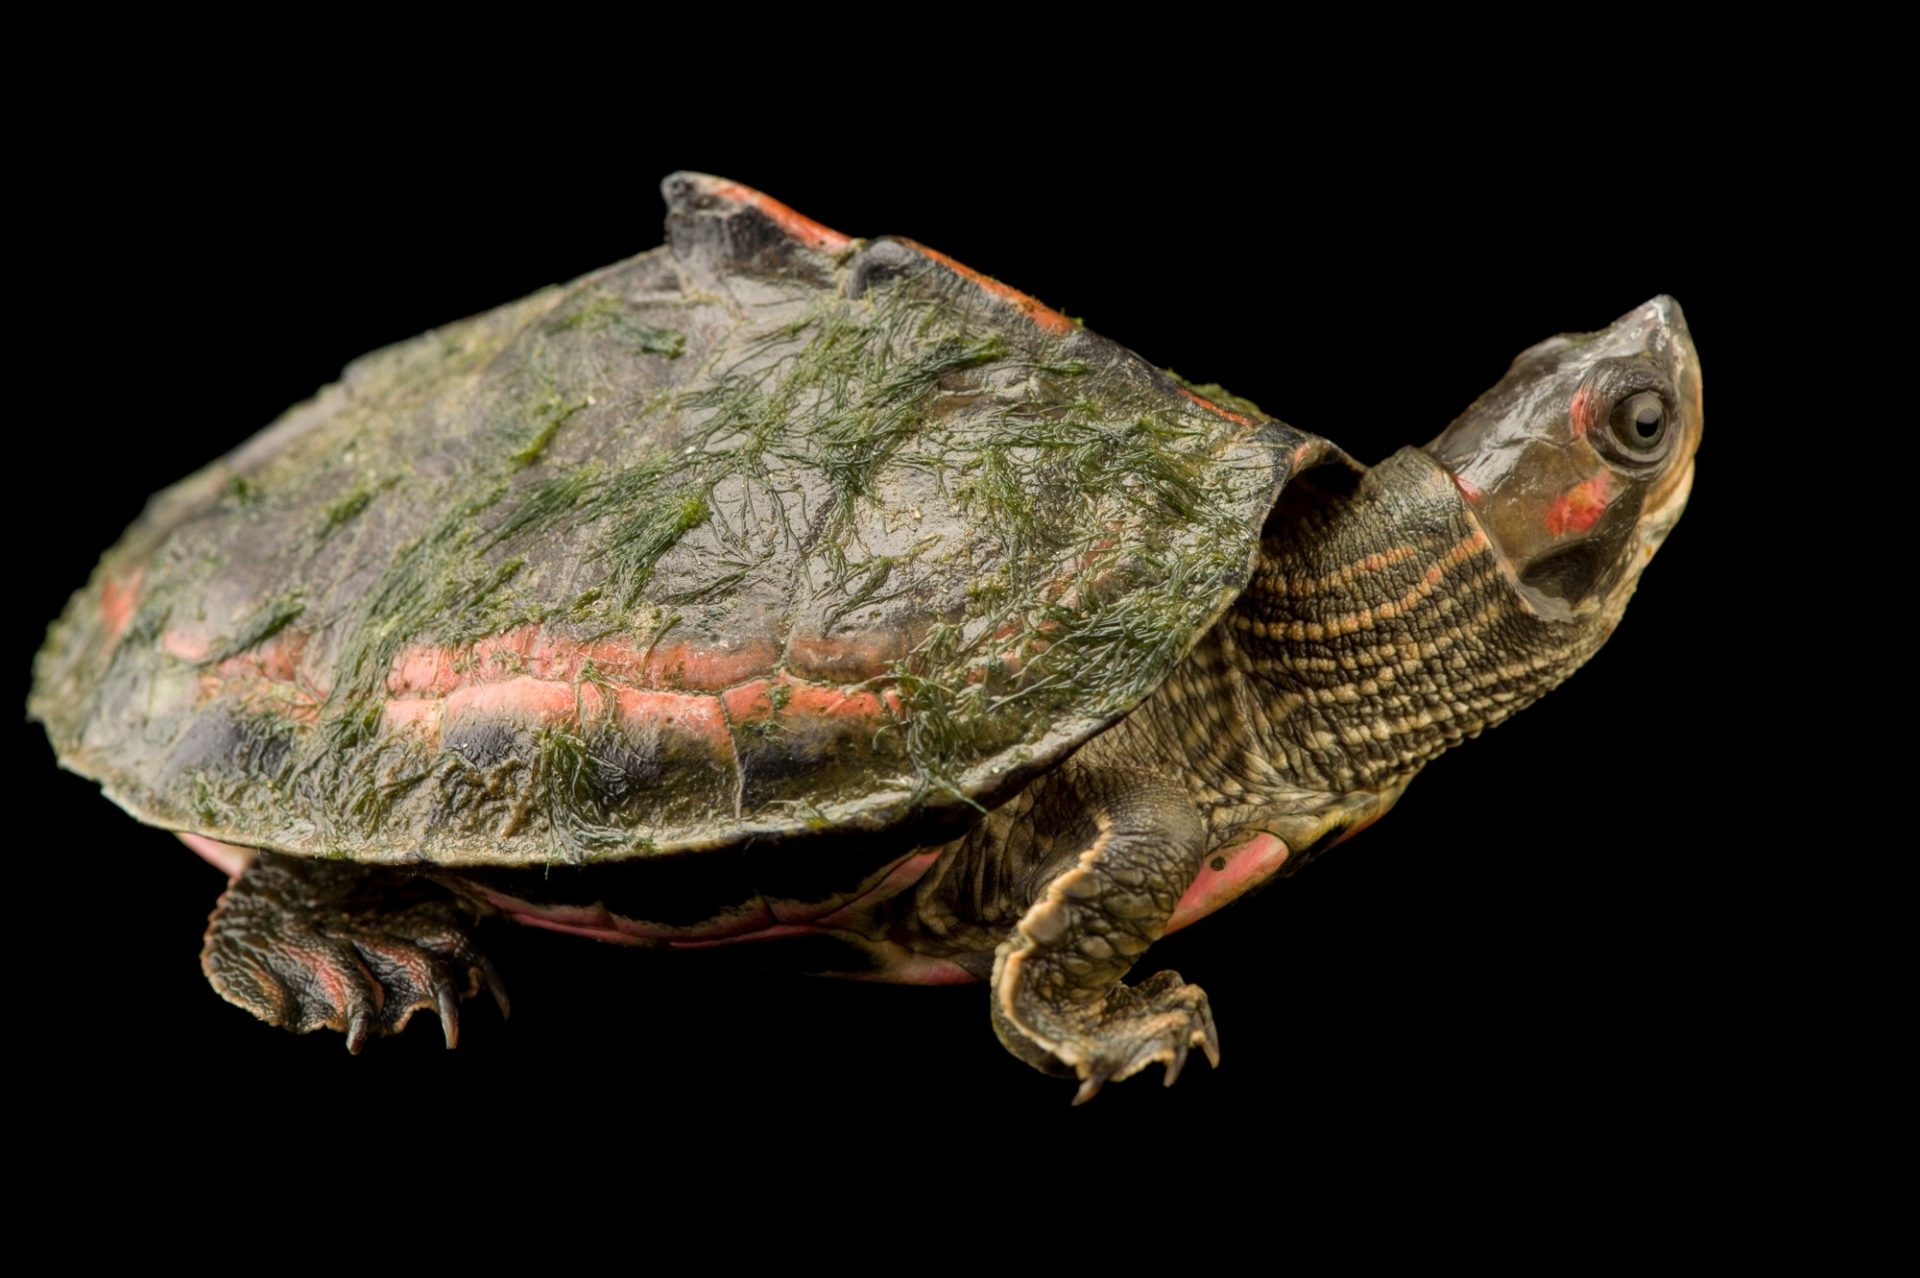 Photo: A pink ringed tent turtle (Pangshura tentoria circumdata) at the Gharial and Turtle Rehabiliation Center.